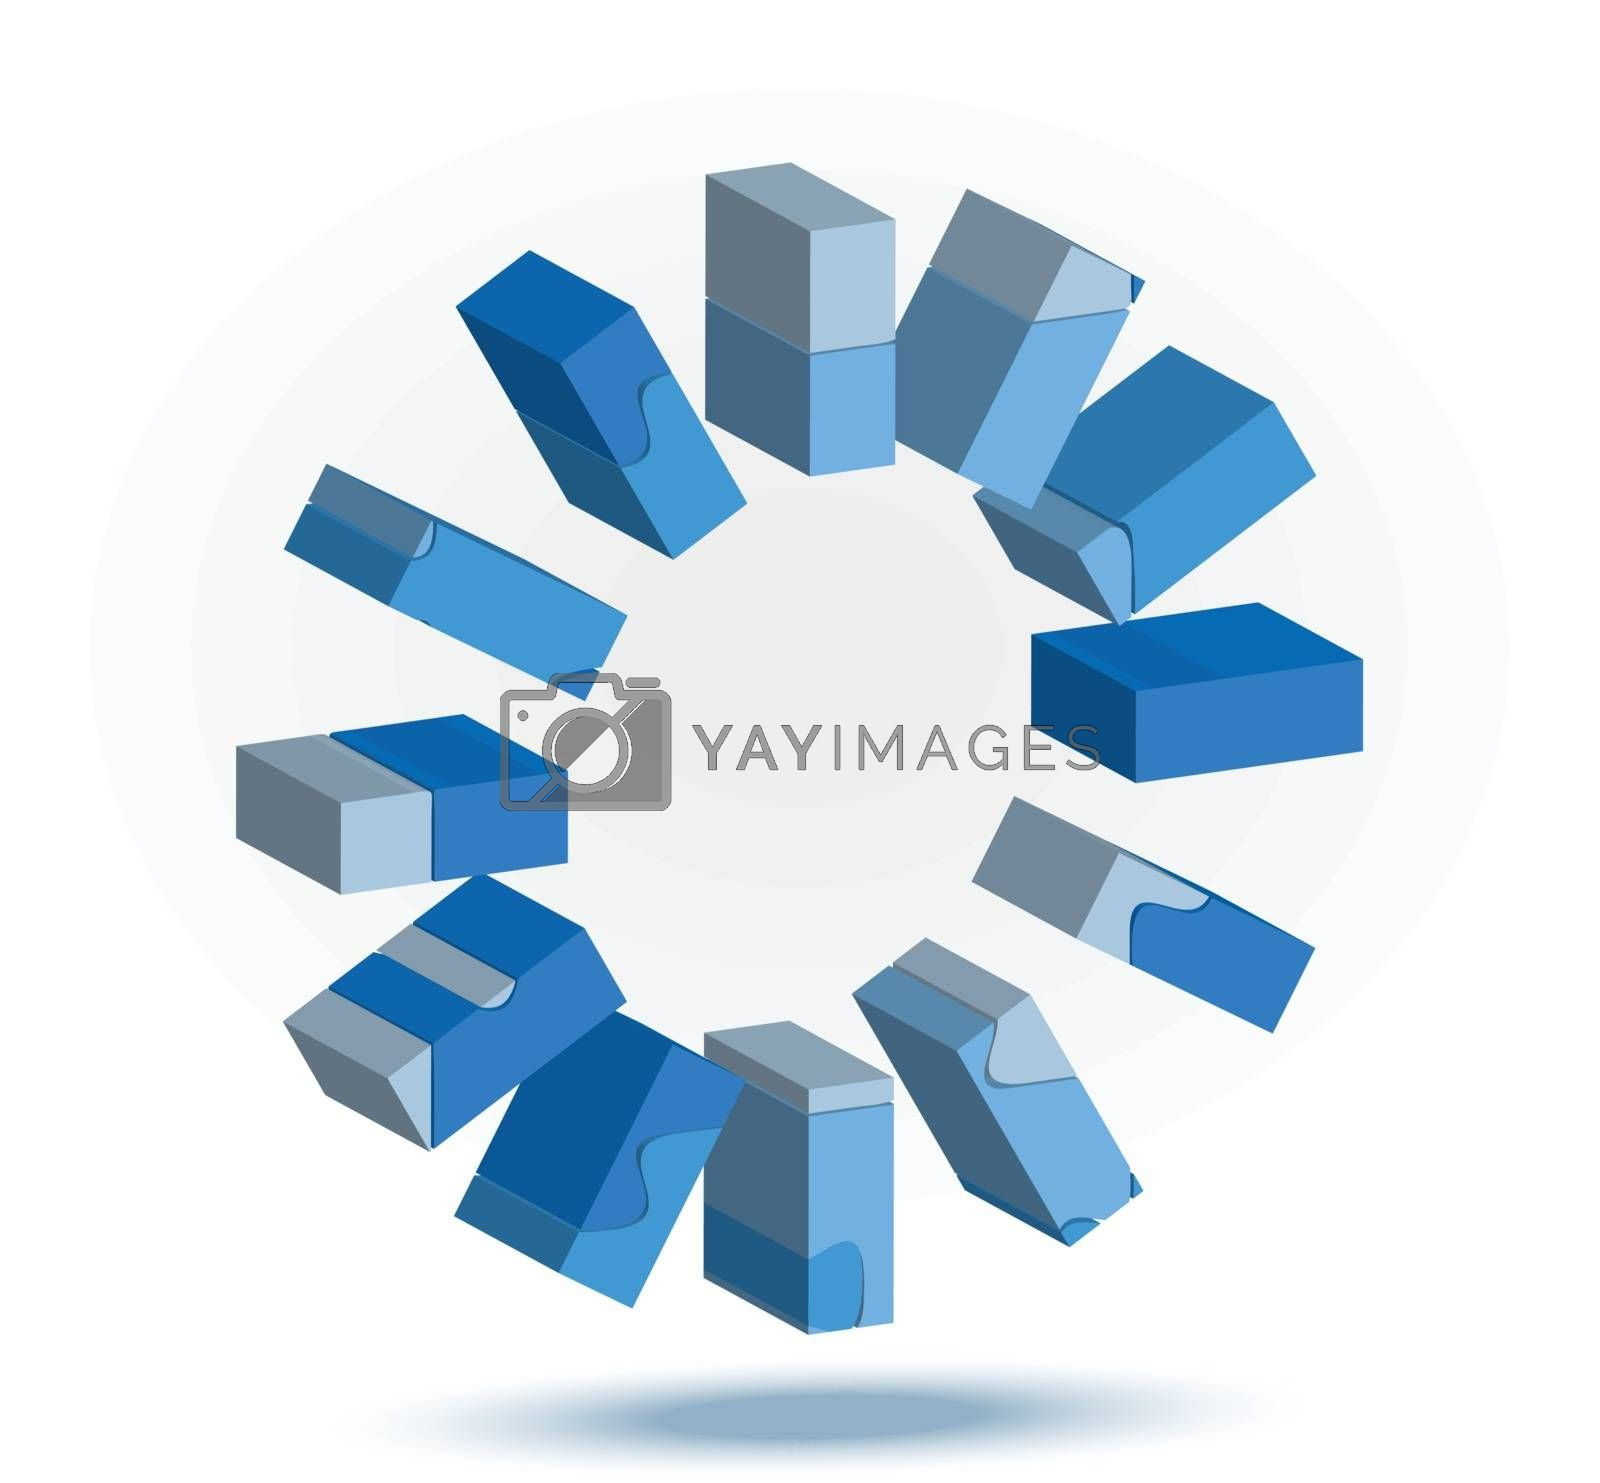 loading icon in puzzle by Istanbul2009